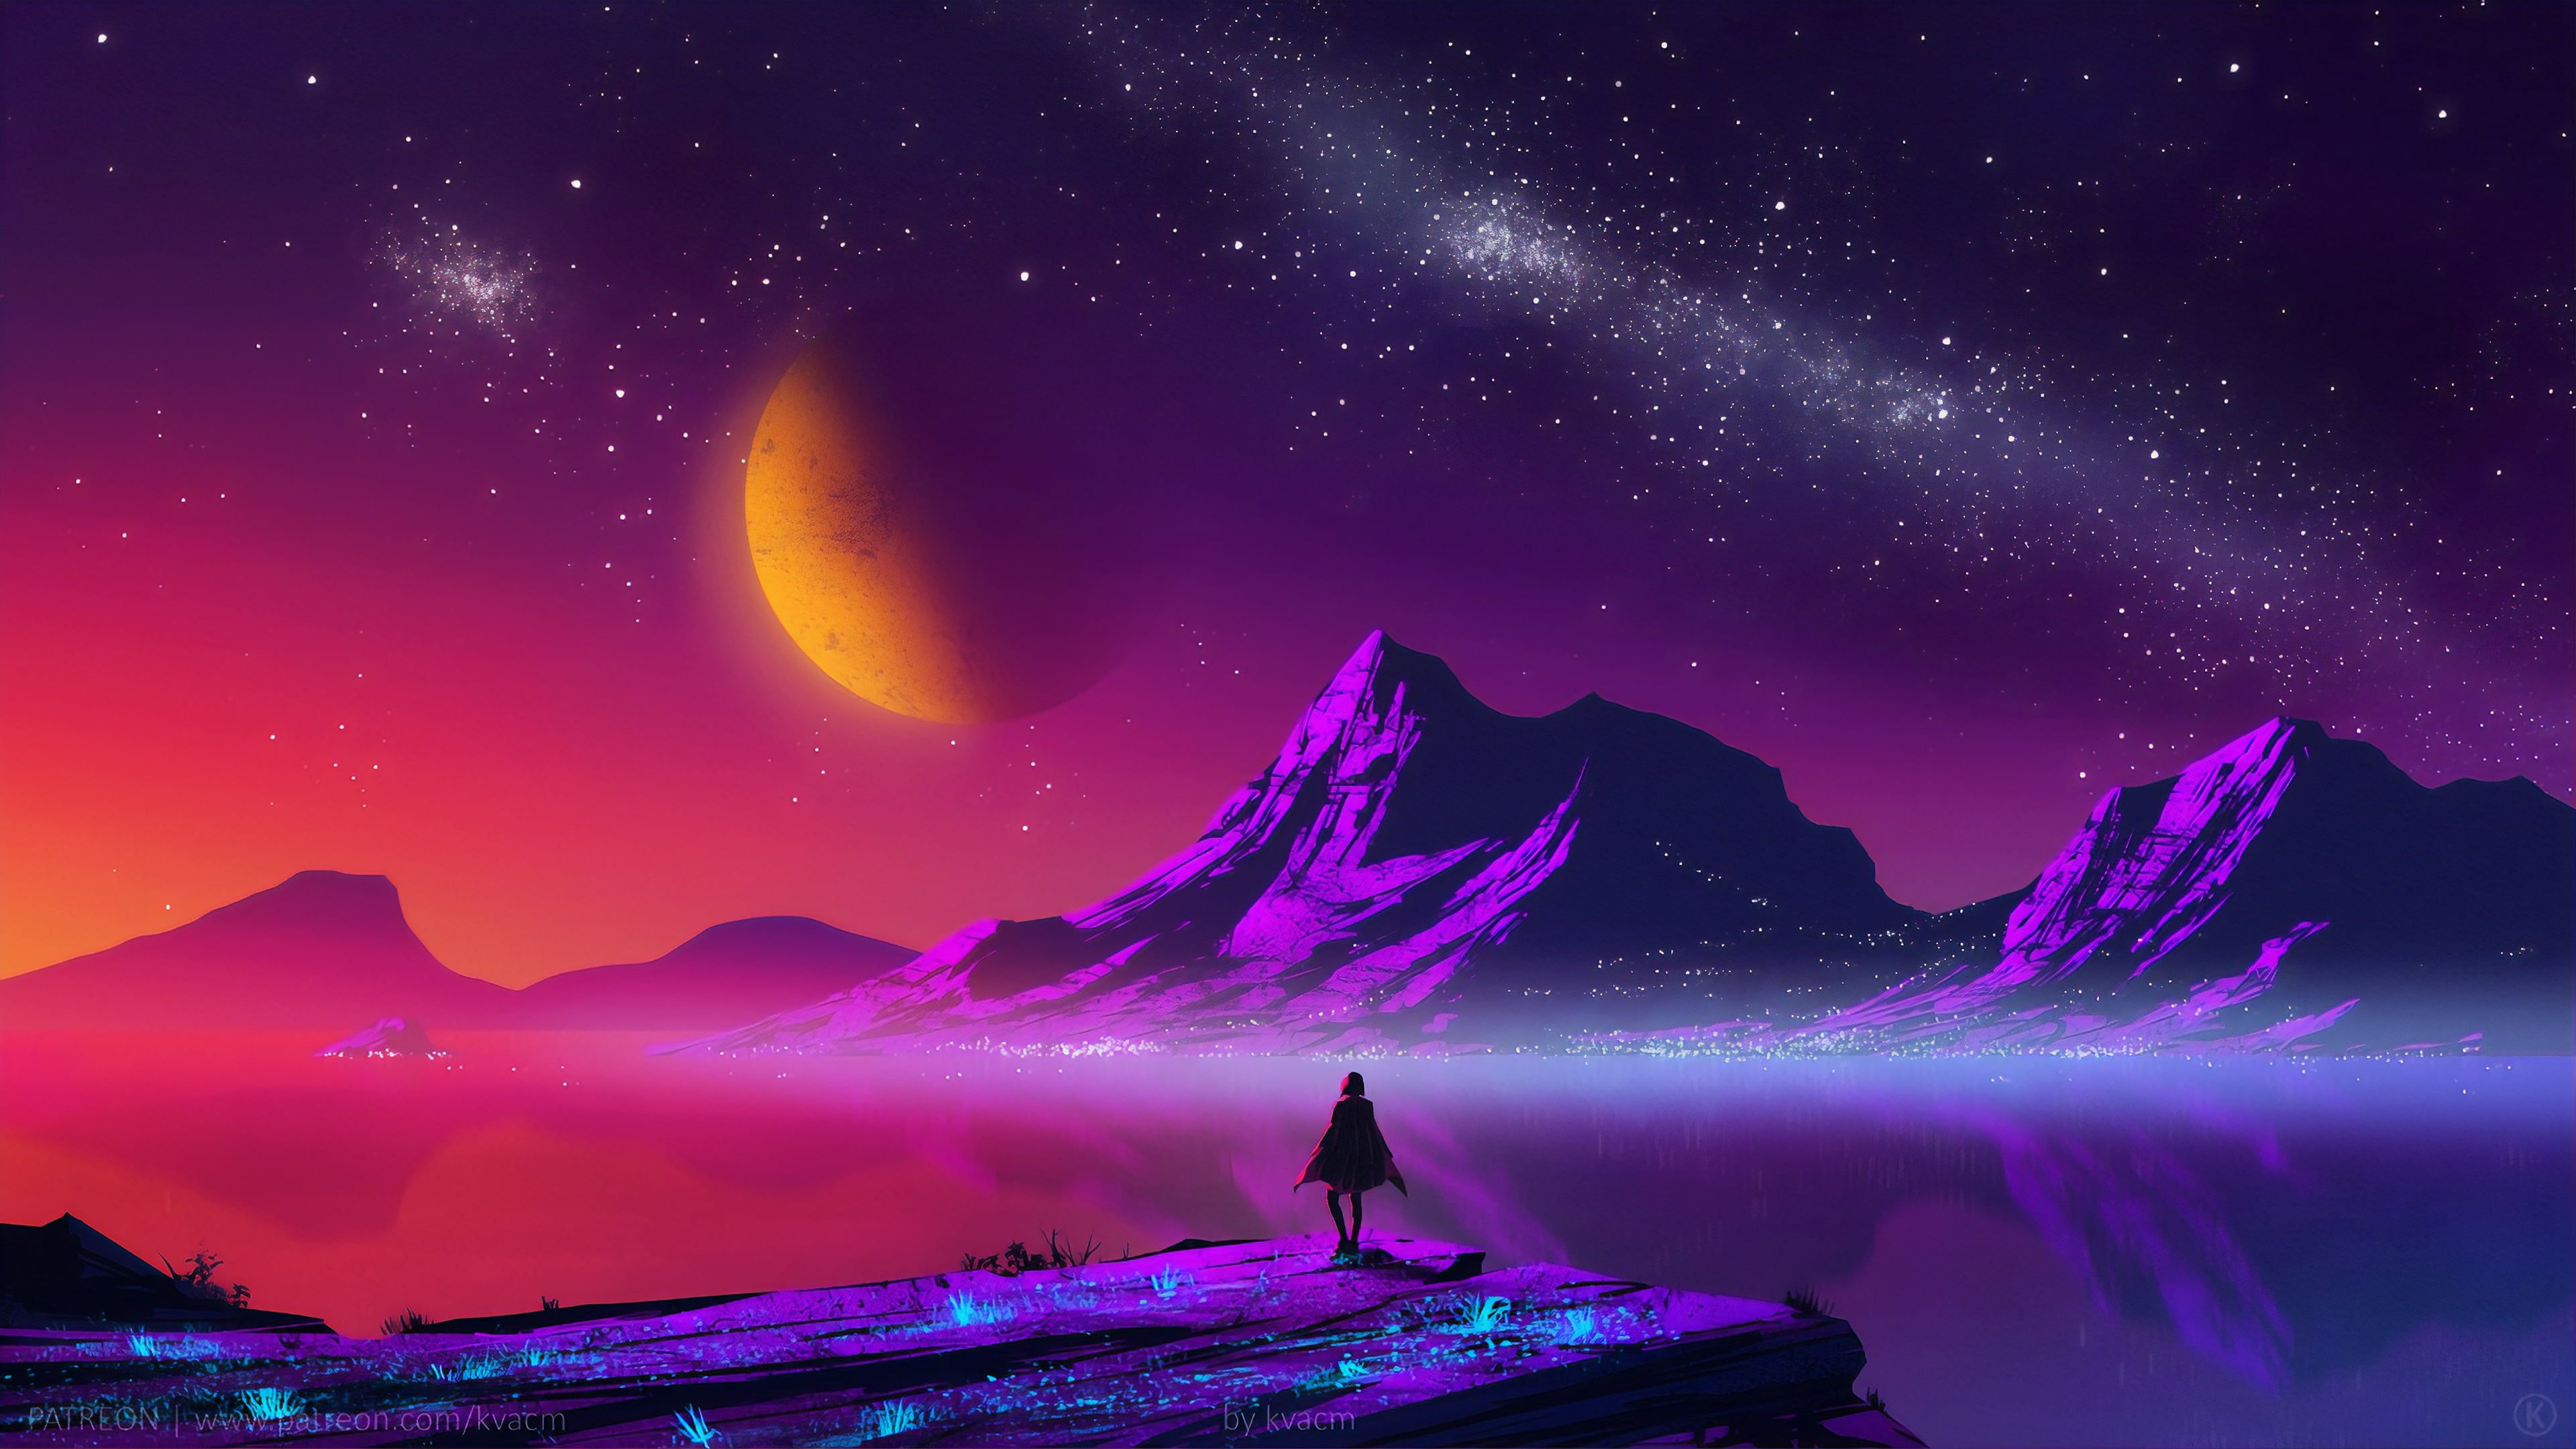 Digital Digital Art Artwork Fantasy Art Drawing Painting Digital Painting Kvacm Silhouette Traveller In 2020 Fantasy Landscape Painting Wallpaper Synthwave Art